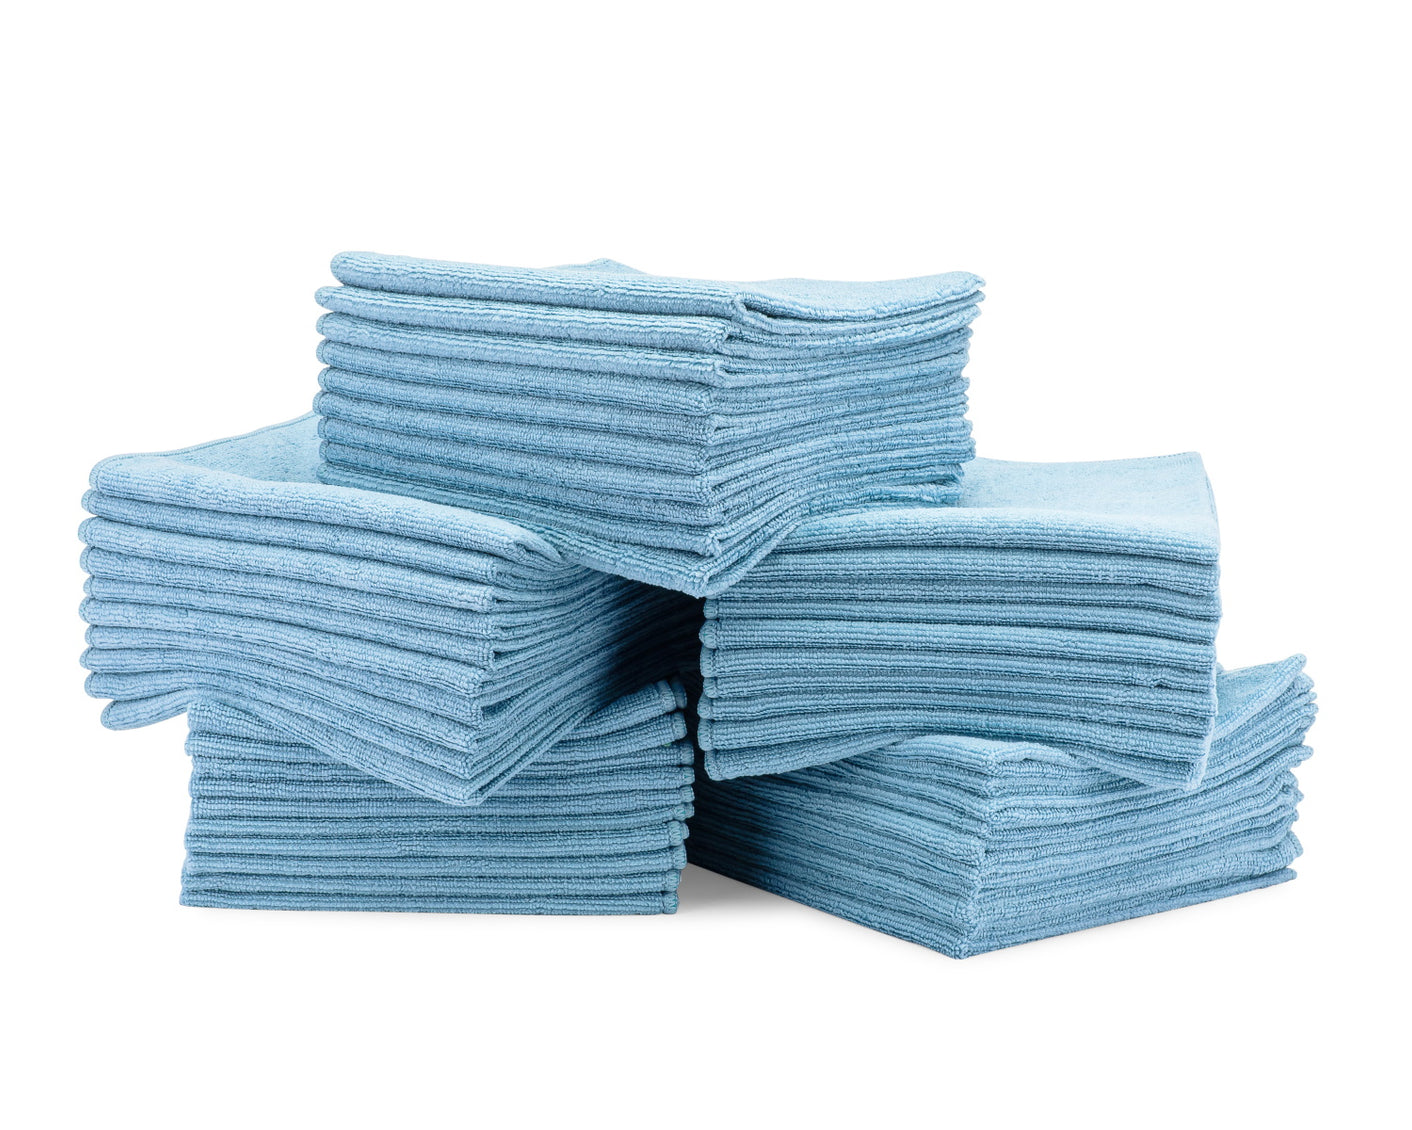 16 x 16 Microfiber Towels Bulk 50 Pack Blue